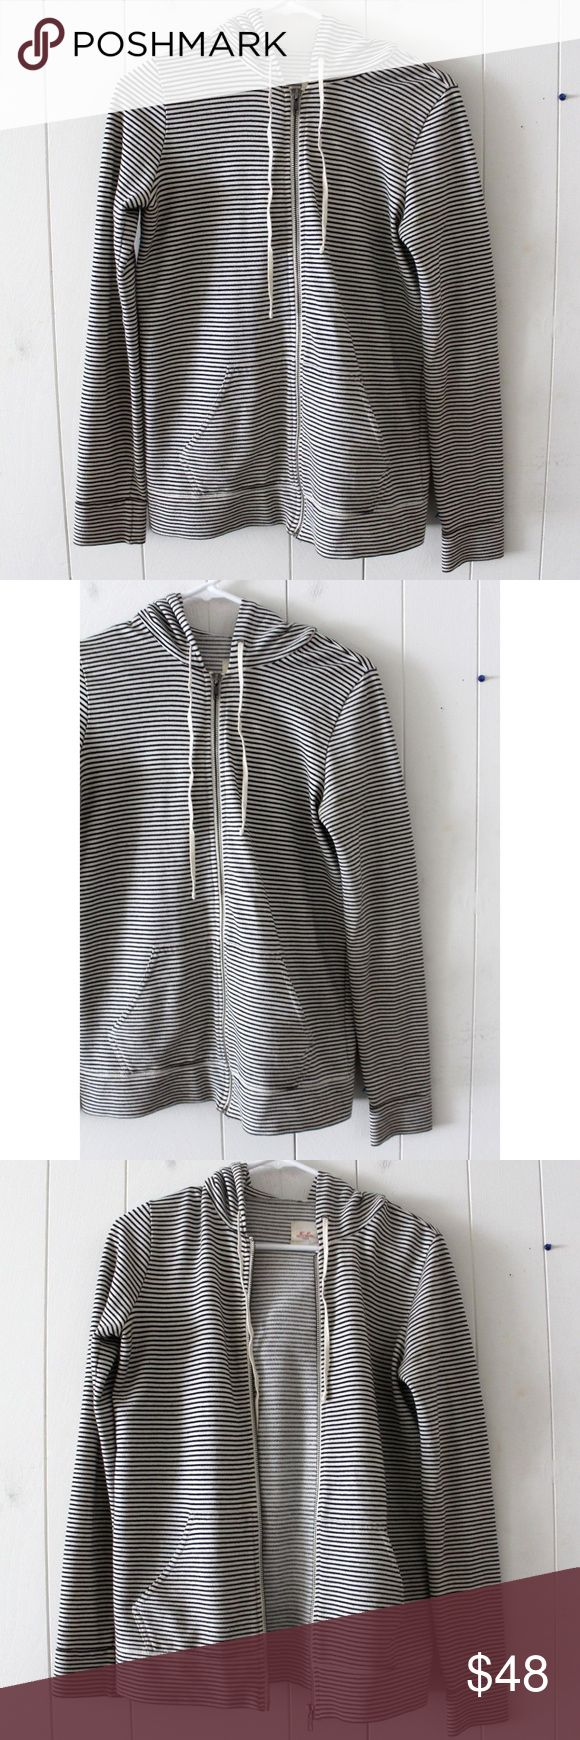 "Madewell Hi-Line Striped Zip-Up Drawstring Hoodie Madewell Hi-Line Striped Zip-Up Drawstring Hoodie - Size Small. Super cute and super comfortable.   Here are the measurements: shoulder to shoulder: 14"" sleeve: 25"" top to bottom trim: 24"" material: cotton/polyester blend features: two front pockets, drawstring neckline, hoodie  Super cute and classy! A great addition to your wardrobe! Madewell Tops Sweatshirts & Hoodies"